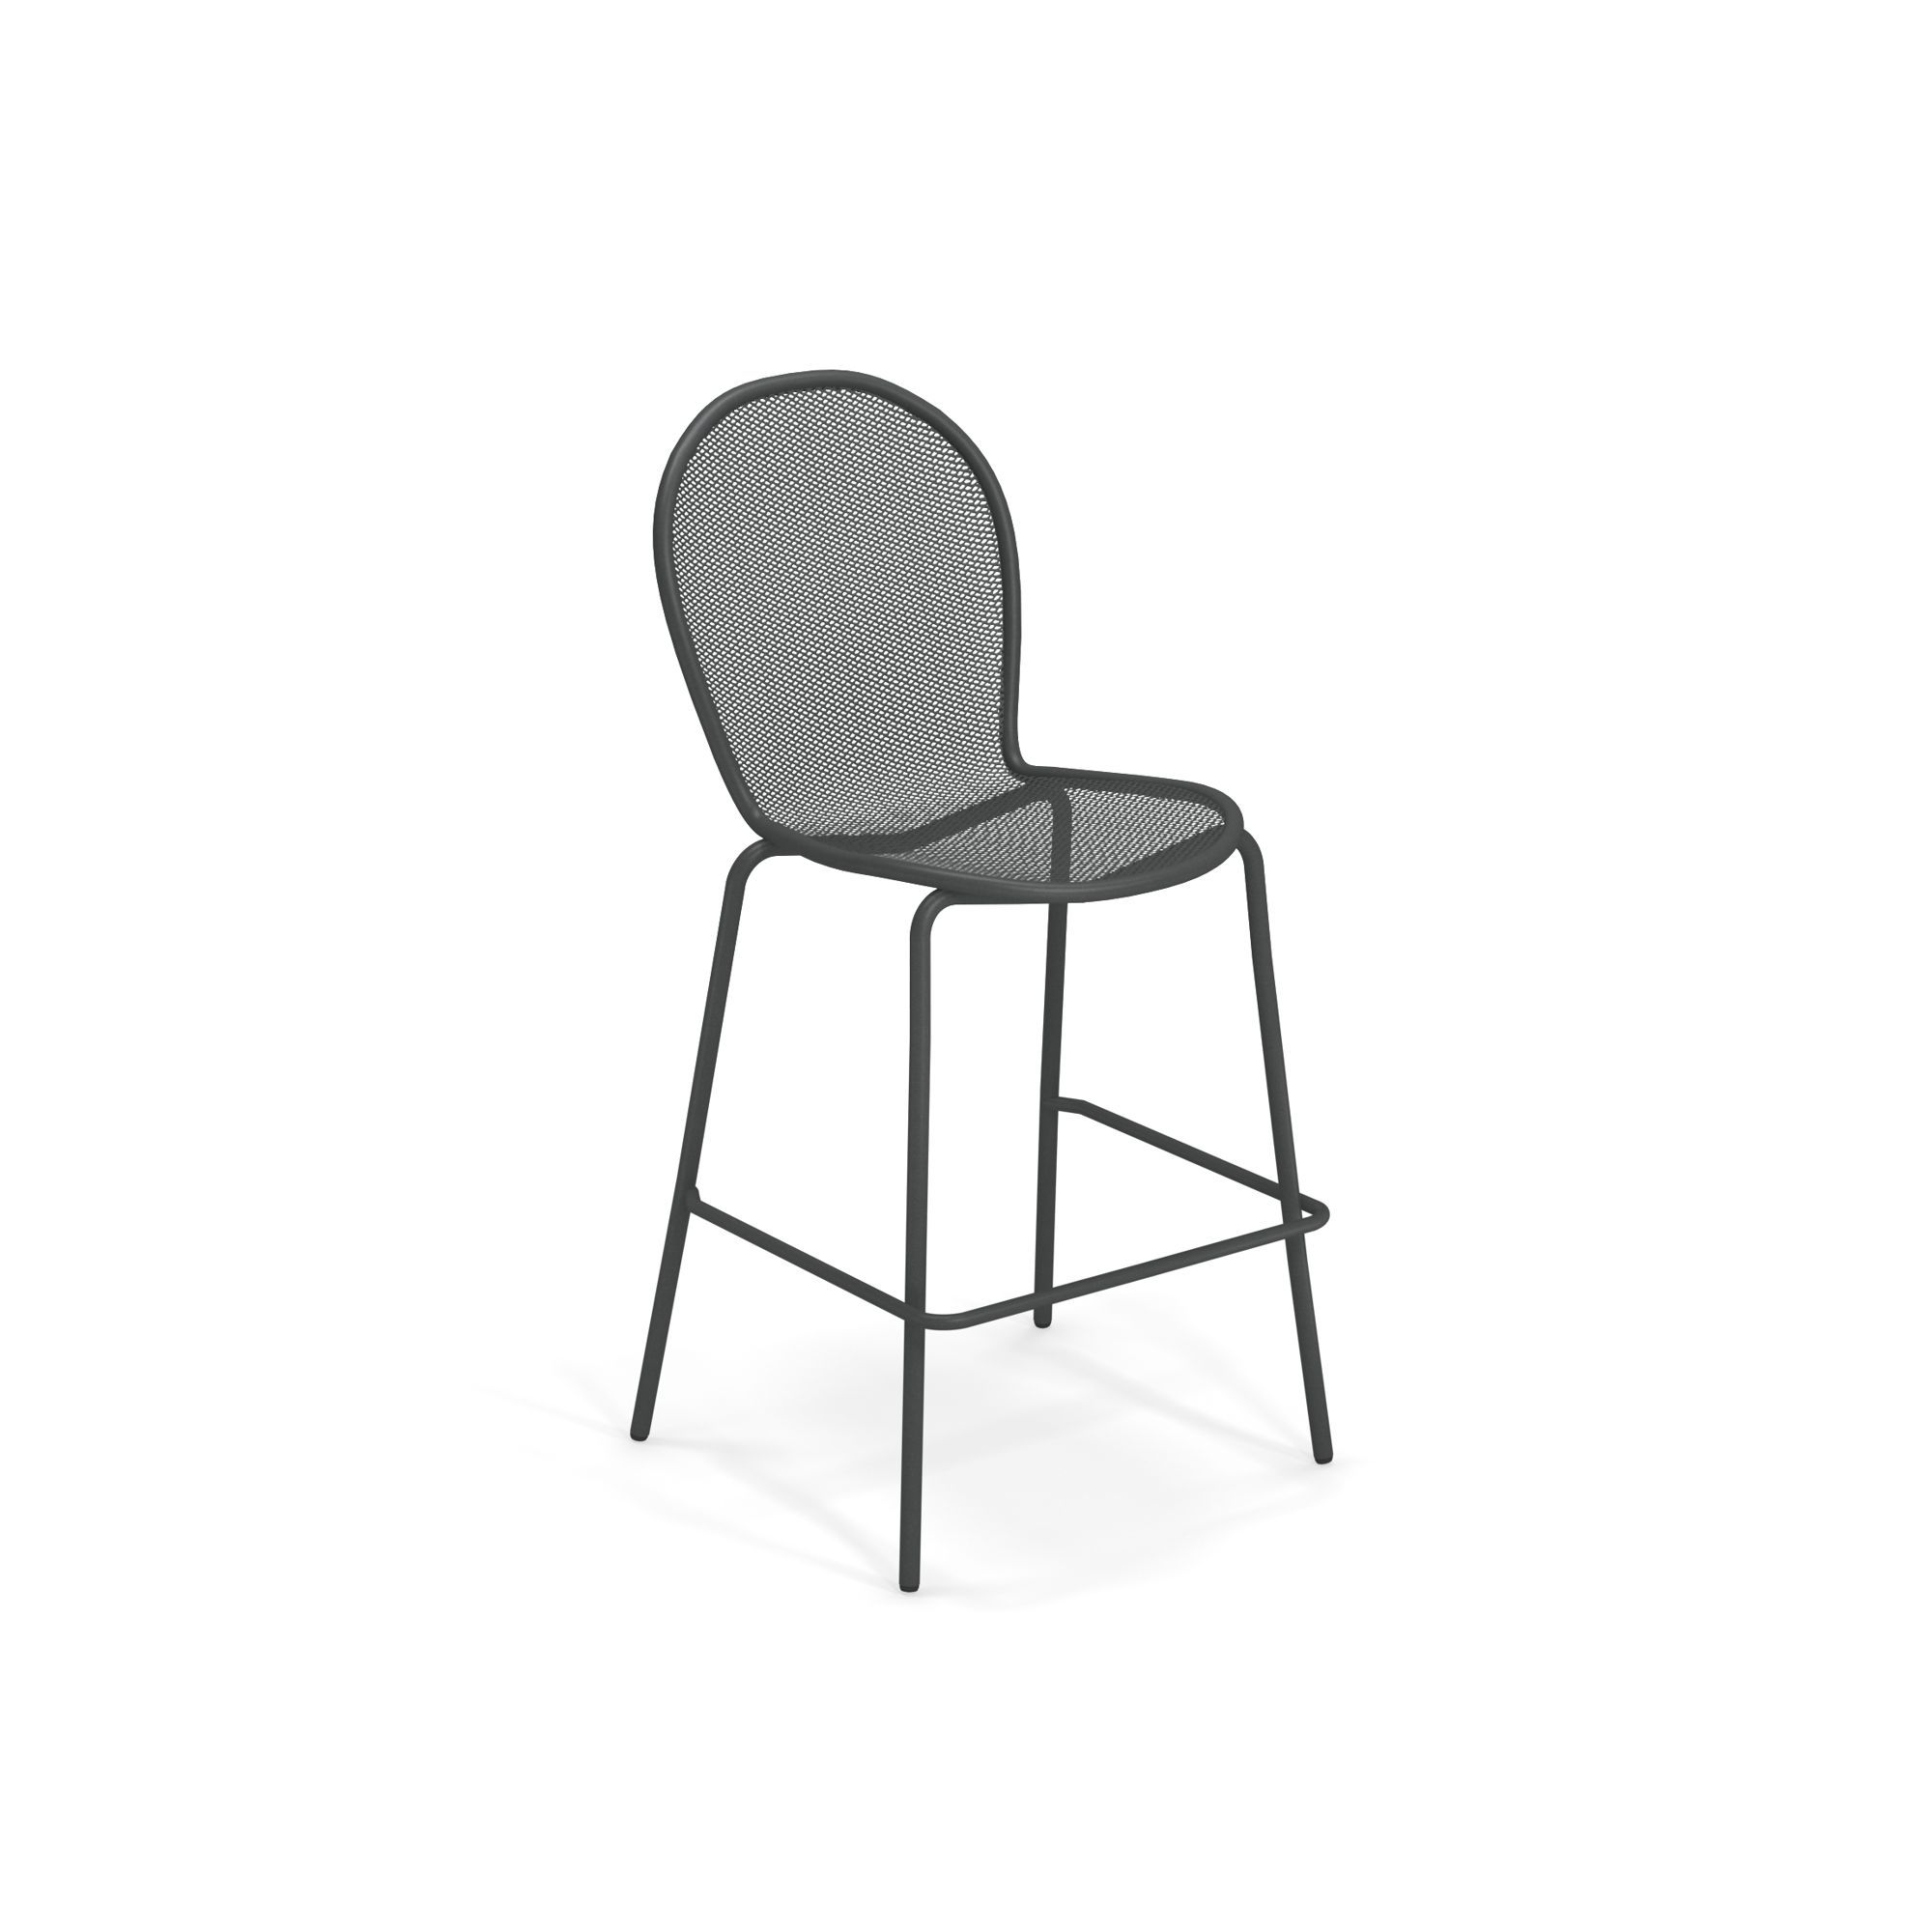 emuamericas, llc 128-22 bar stool, stacking, outdoor